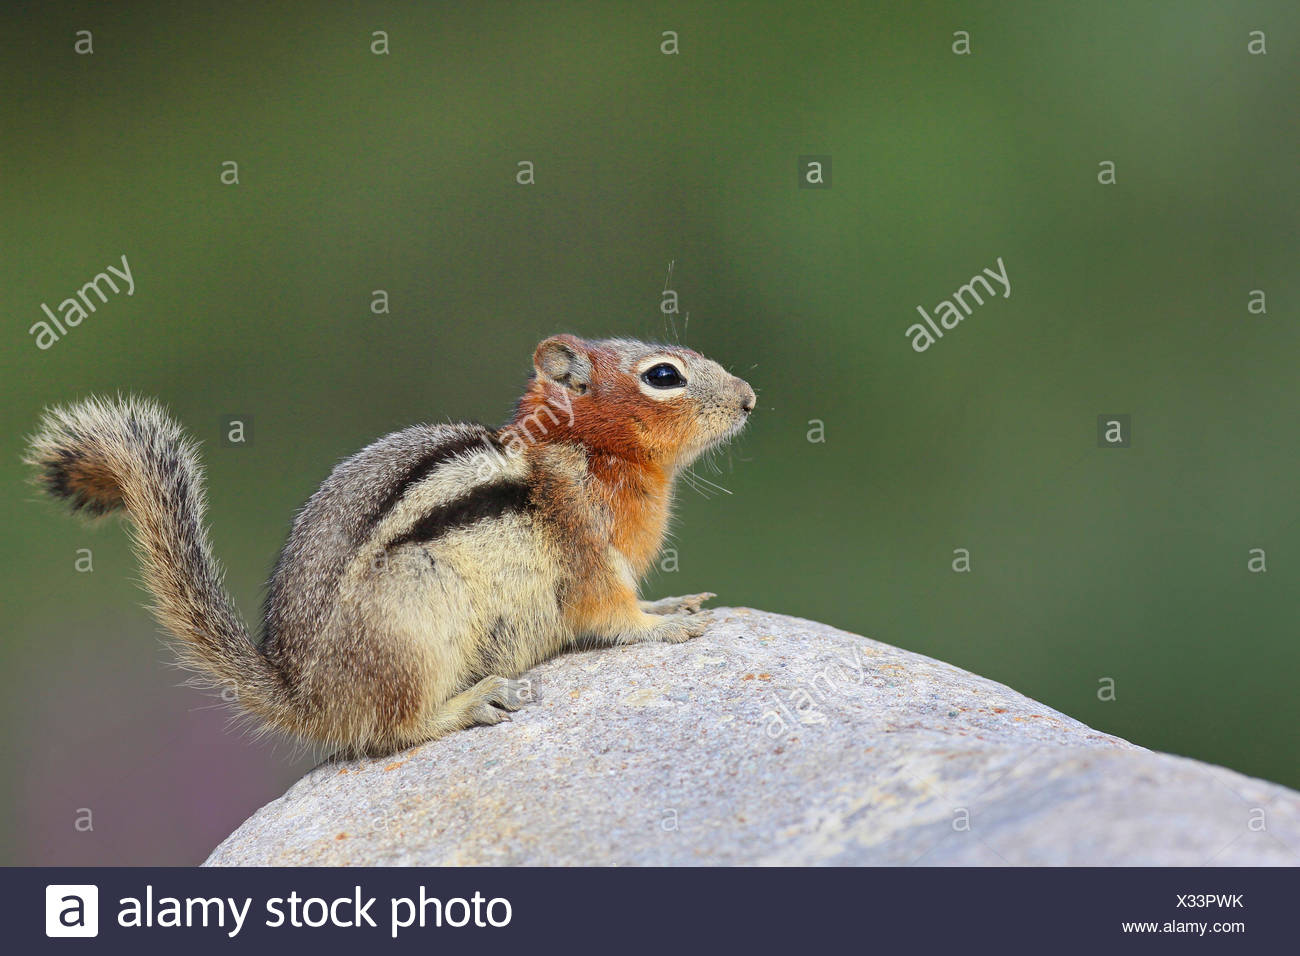 golden-mantled ground squirrel (Spermophilus lateralis, Citellus lateralis, Callospermophilus lateralis), sits ona rock, Cananda, Banff National Park - Stock Image